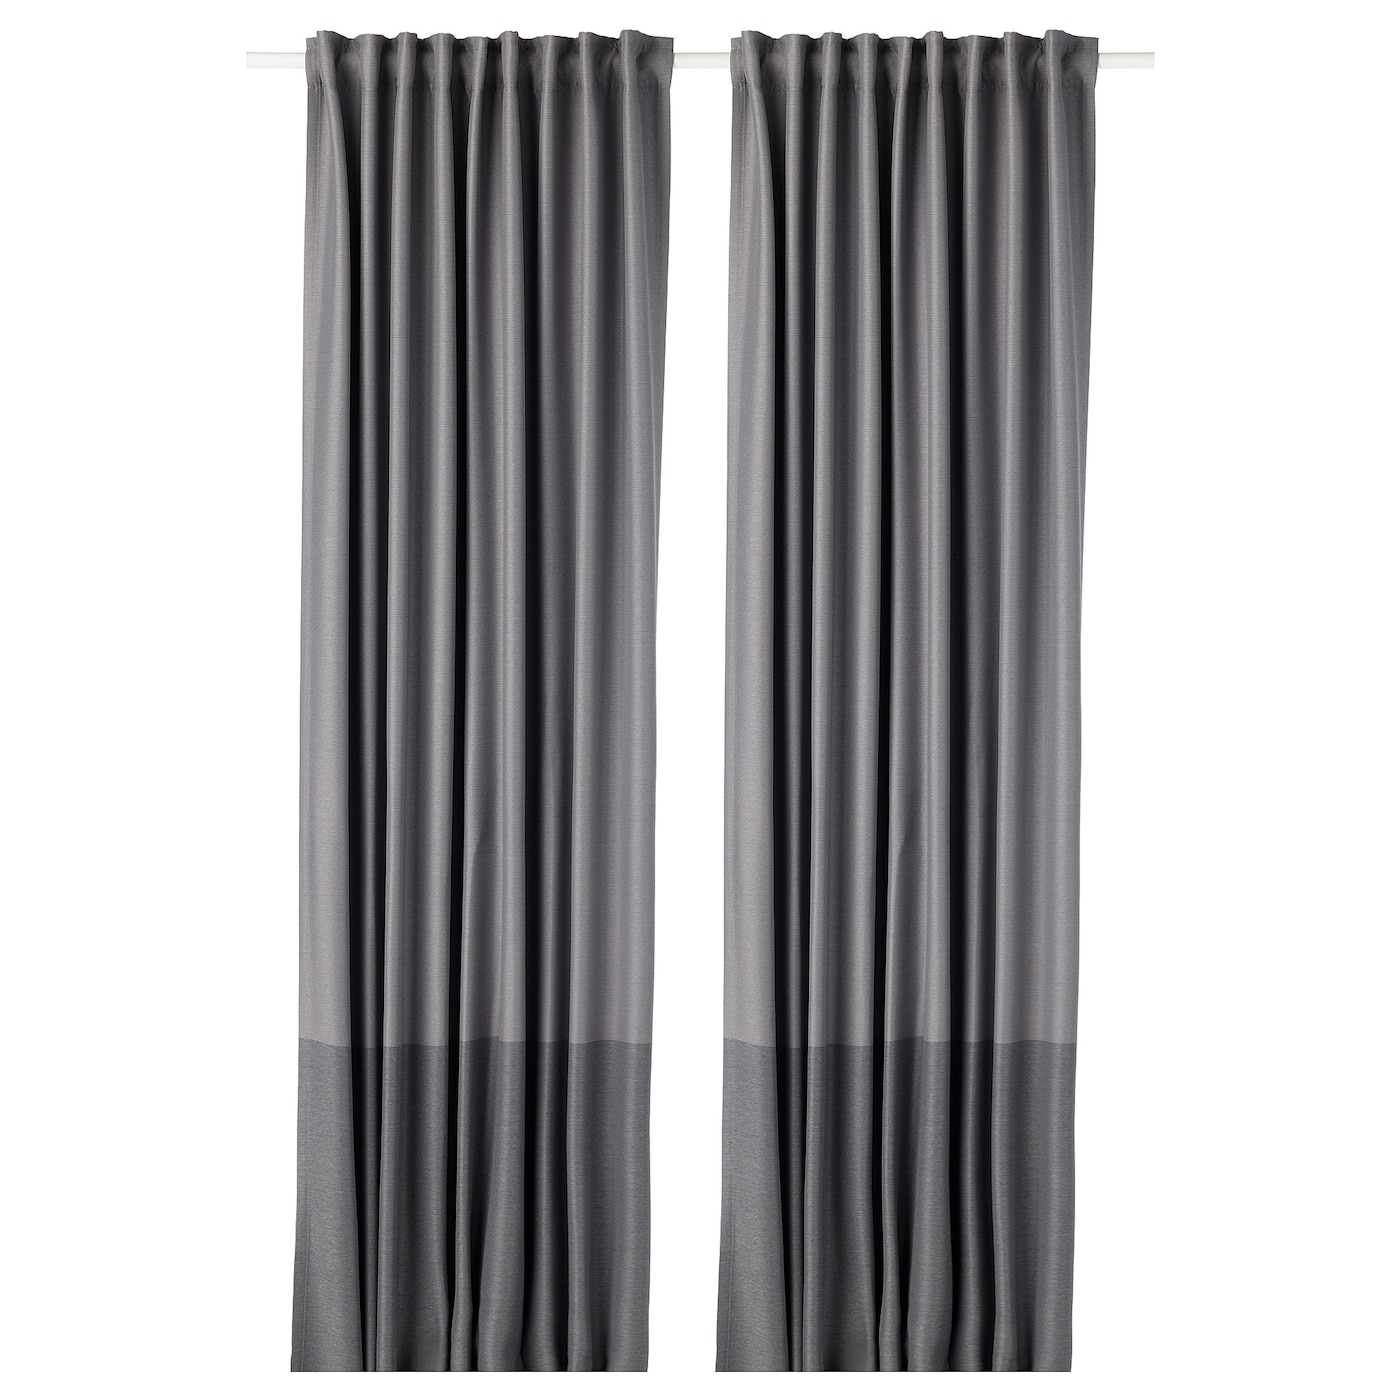 IKEA MARJUN block-out curtains, 1 pair The curtains can be used on a curtain rod or a curtain track.